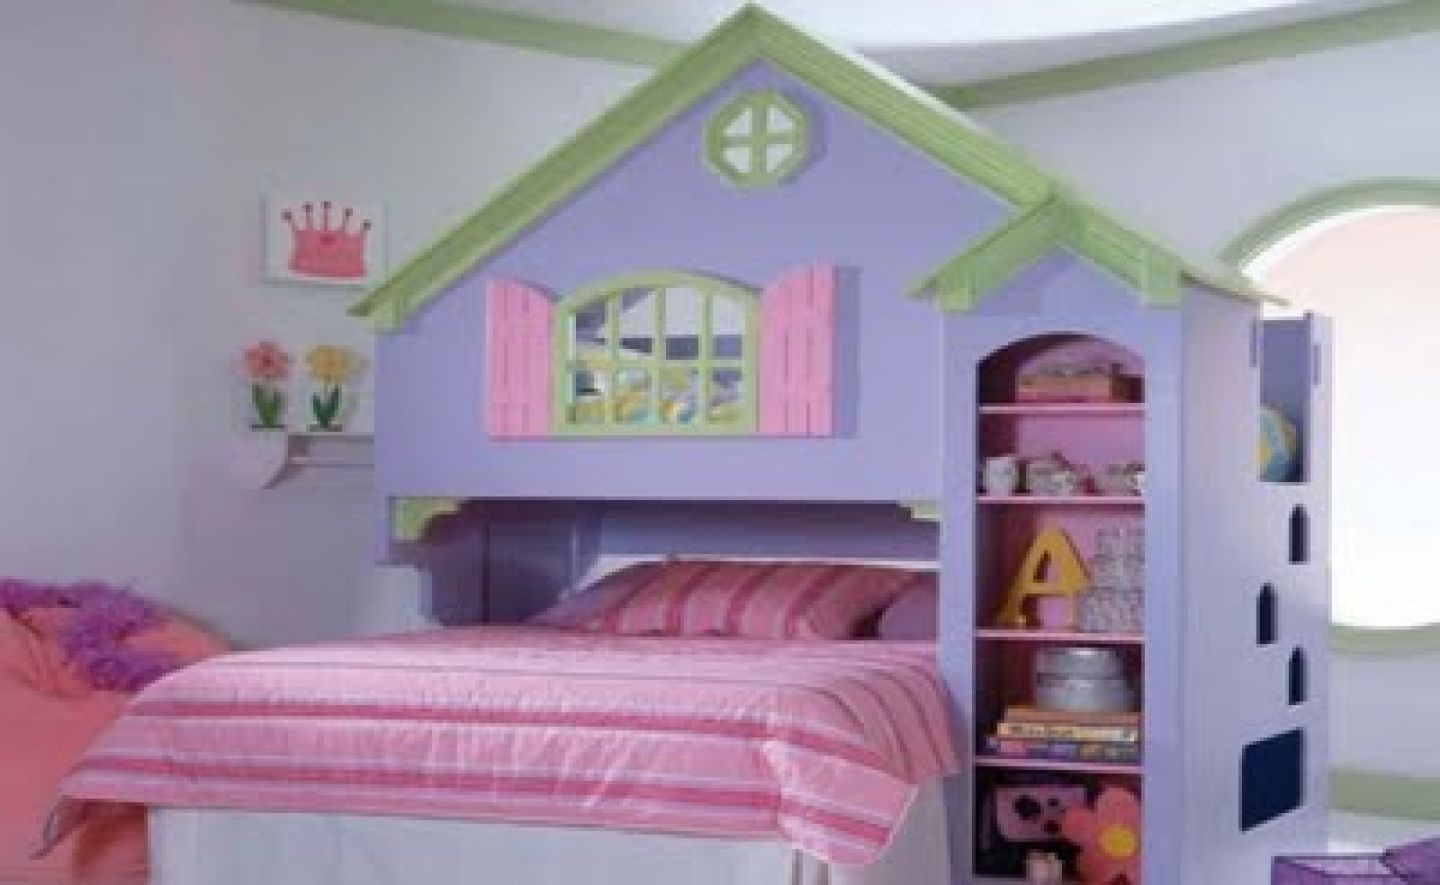 bed design for kids 2018. Childrens Beds  designs cool architecture bed ideas childrens